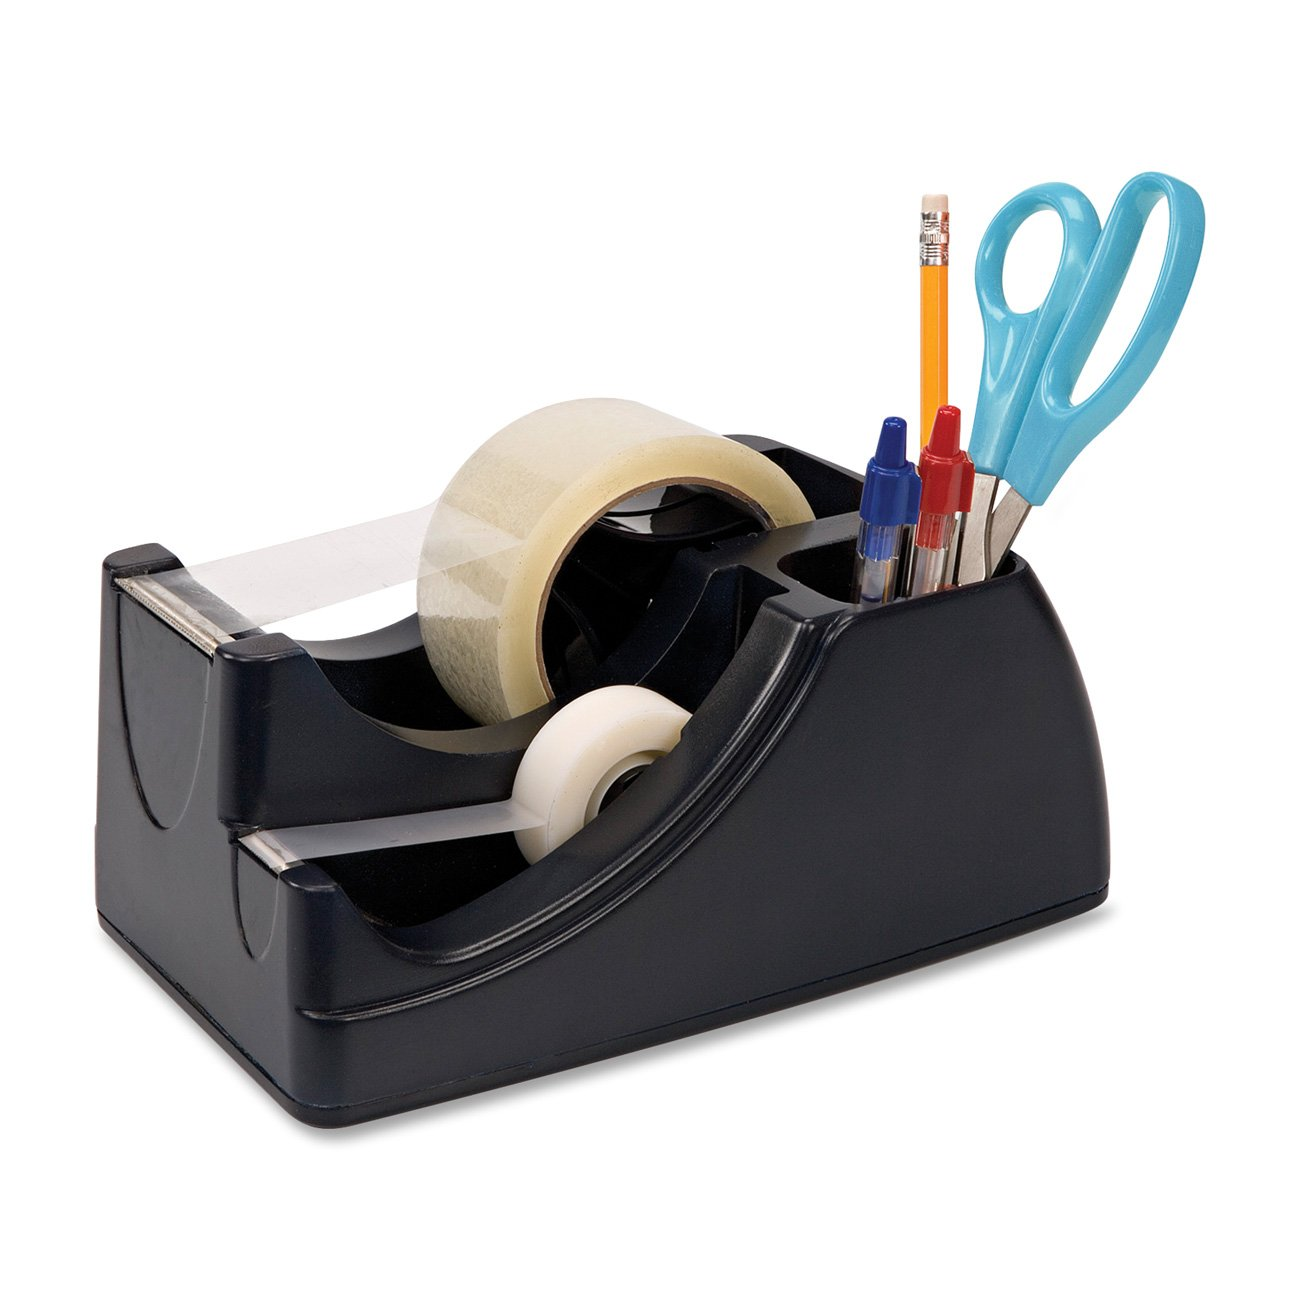 Officemate International Corp OIC96690 Heavy-Duty Tape Dispenser- Holds 2in. Roll and .75in. Roll- Black B001A3Y32C  2 In